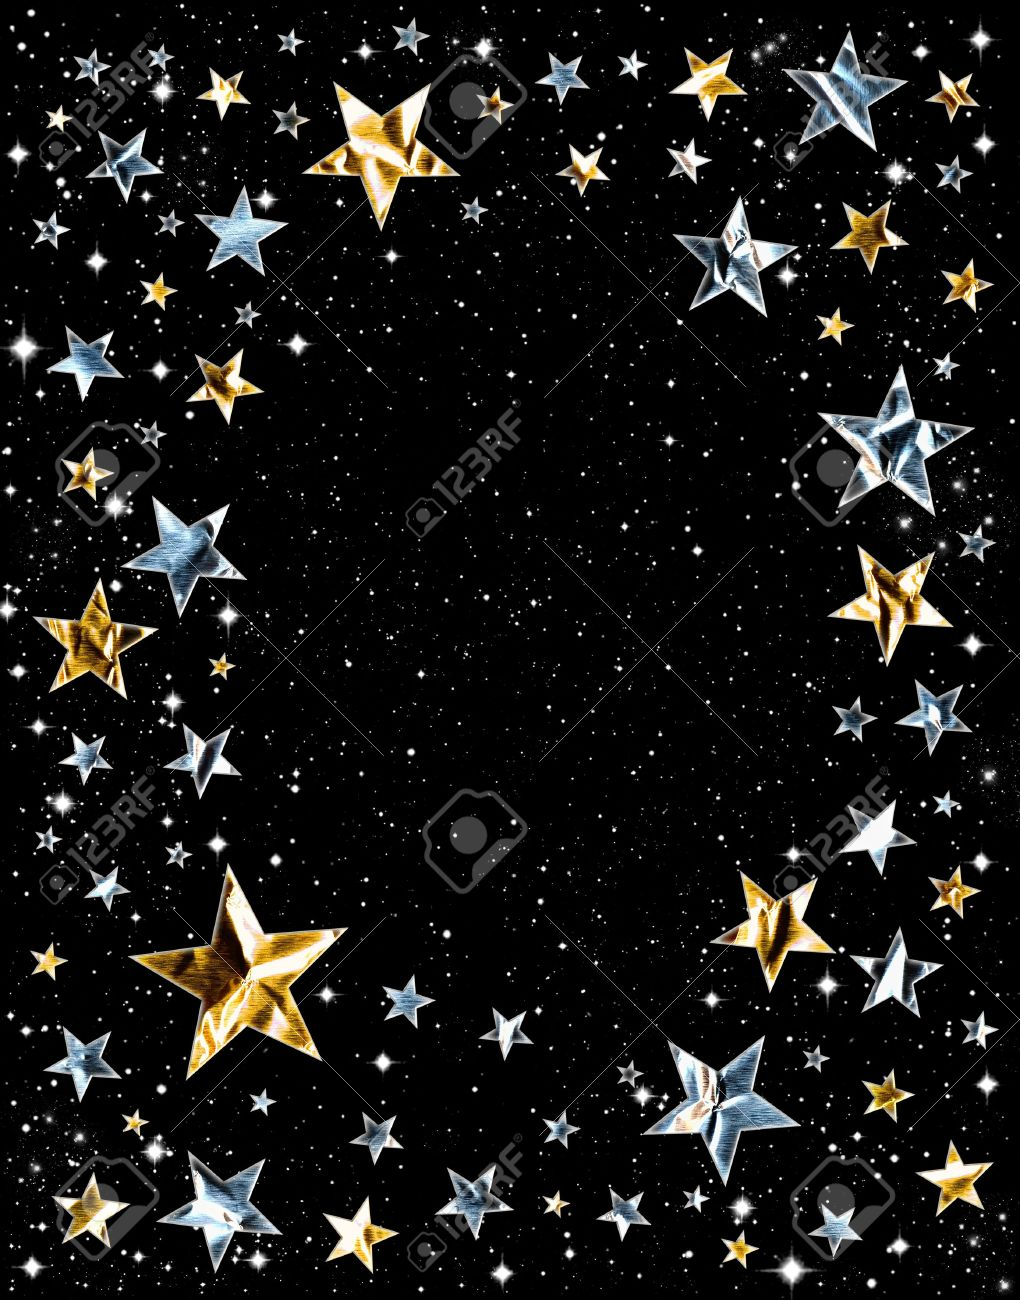 Silver and gold stars on a black space background Stock Photo - 10358700